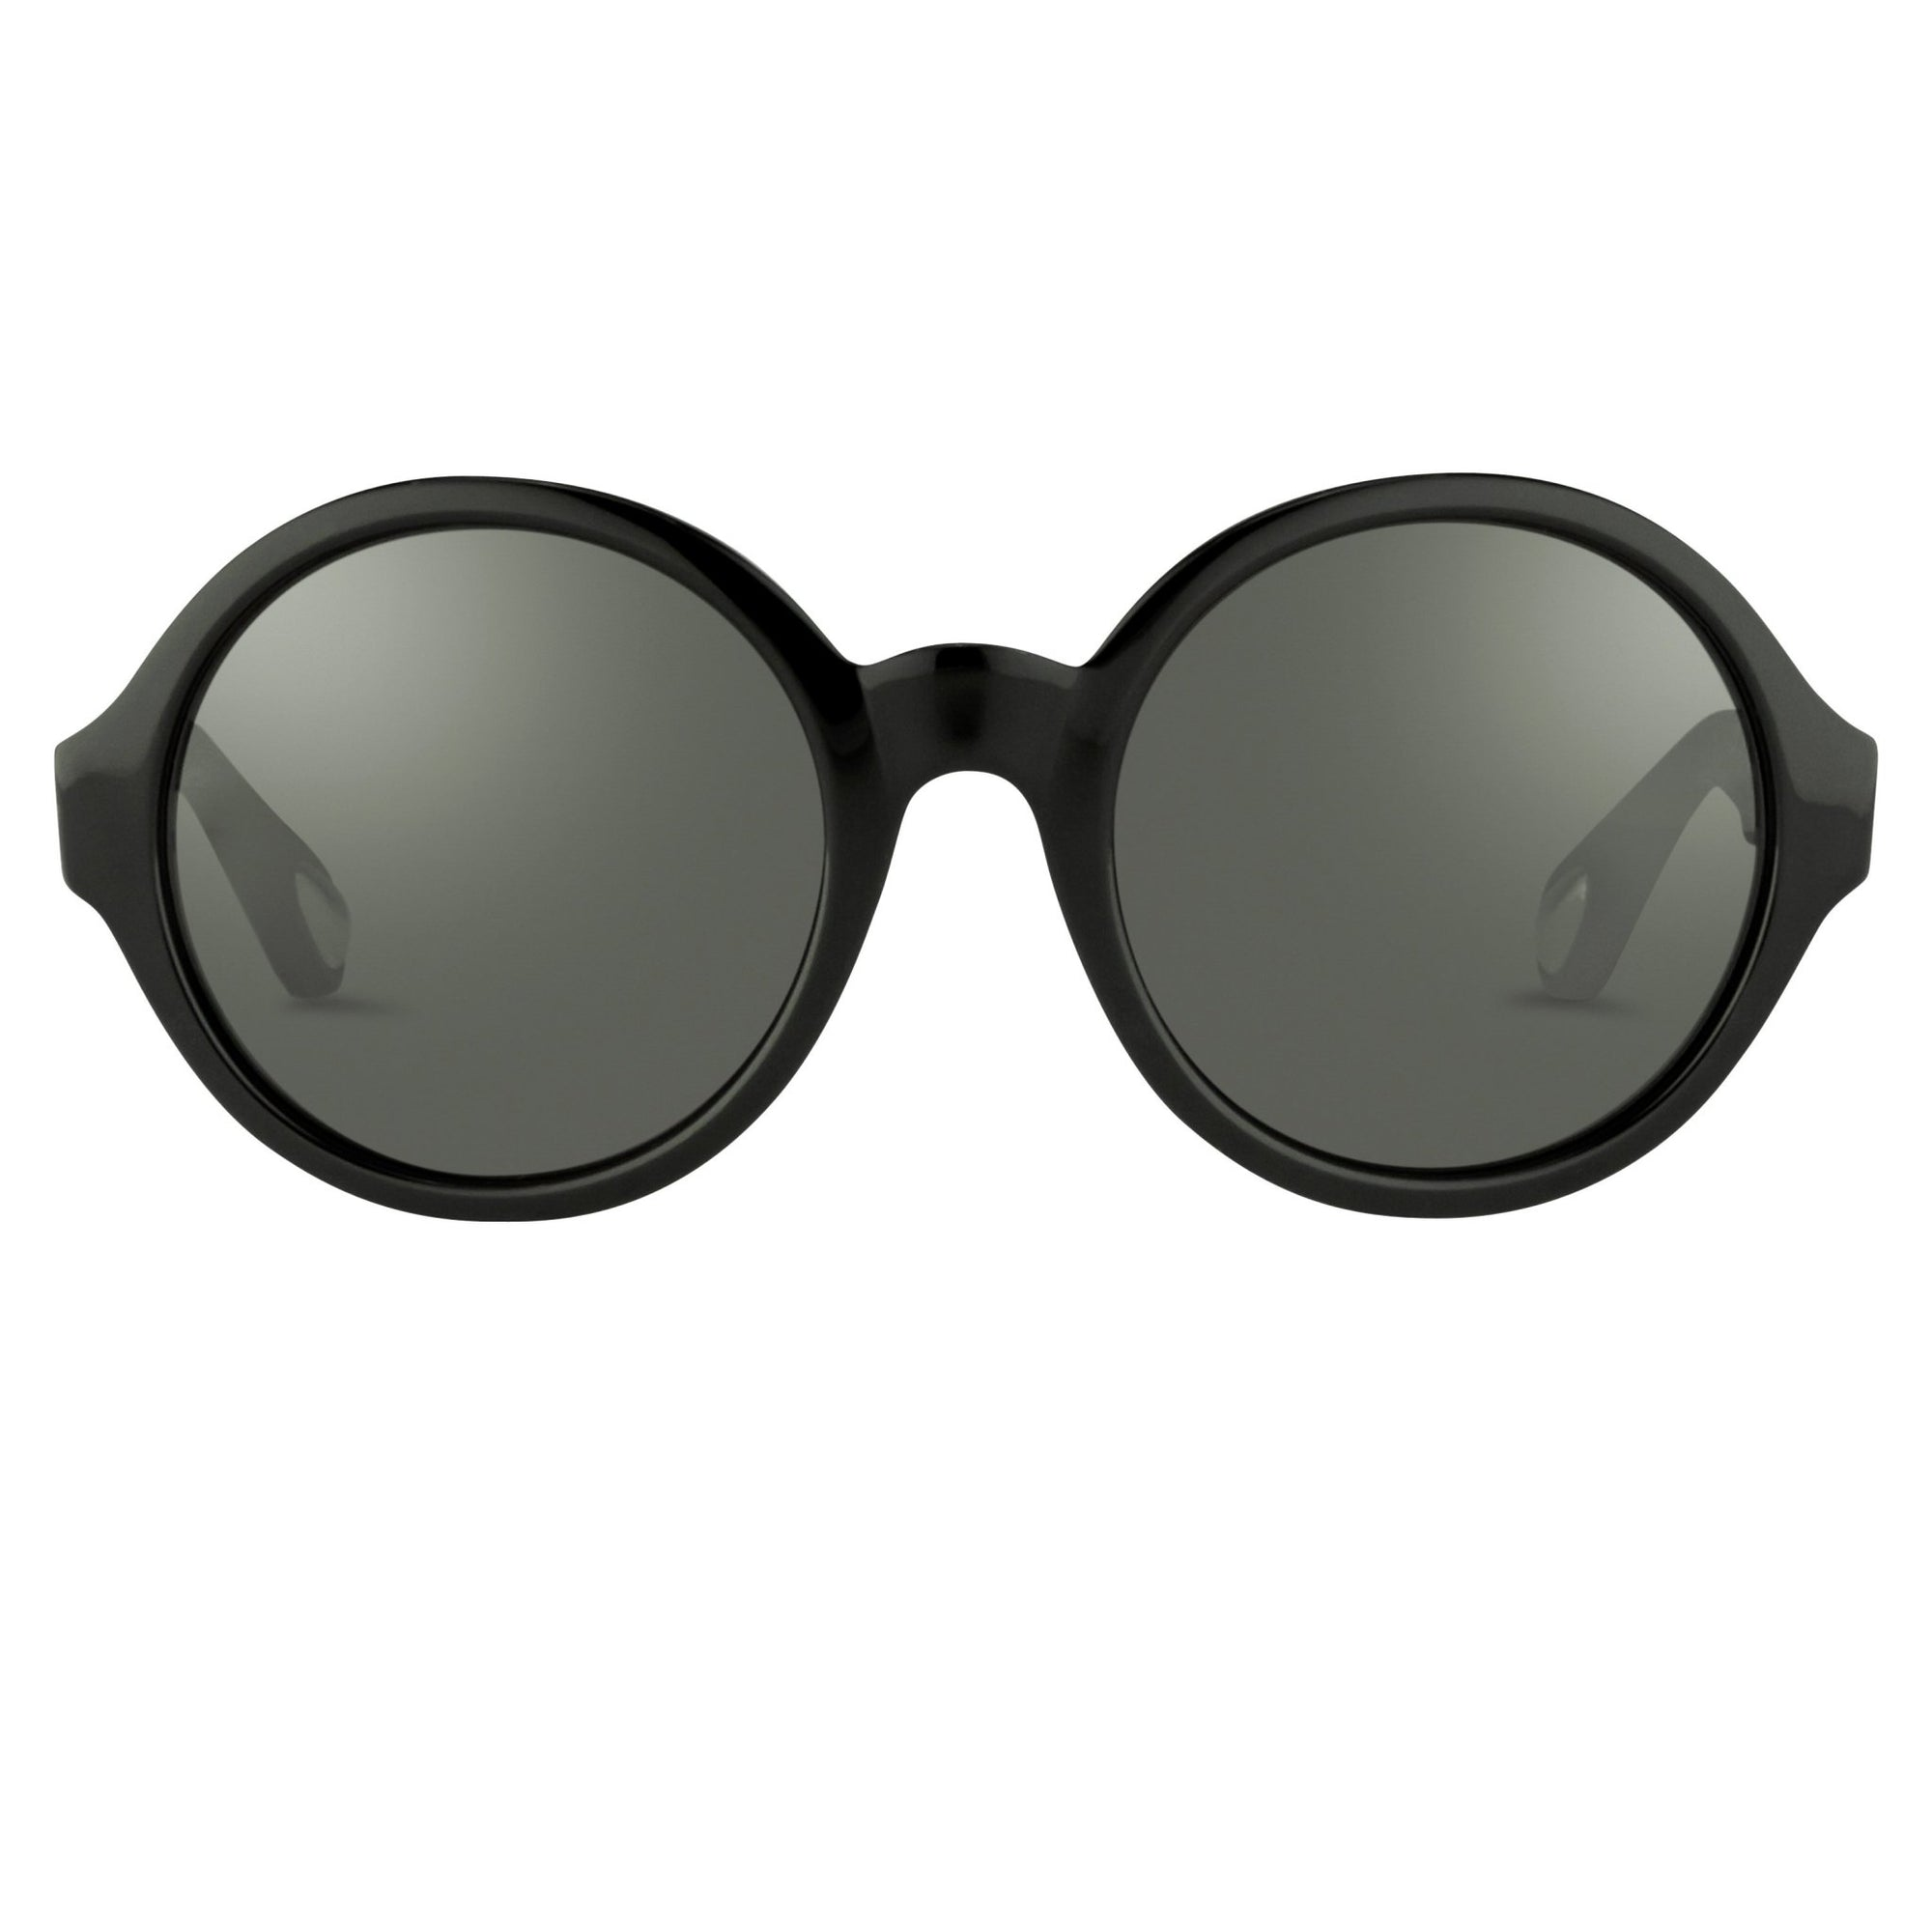 Ann Demeulemeester Sunglasses Round Black - Watches & Crystals